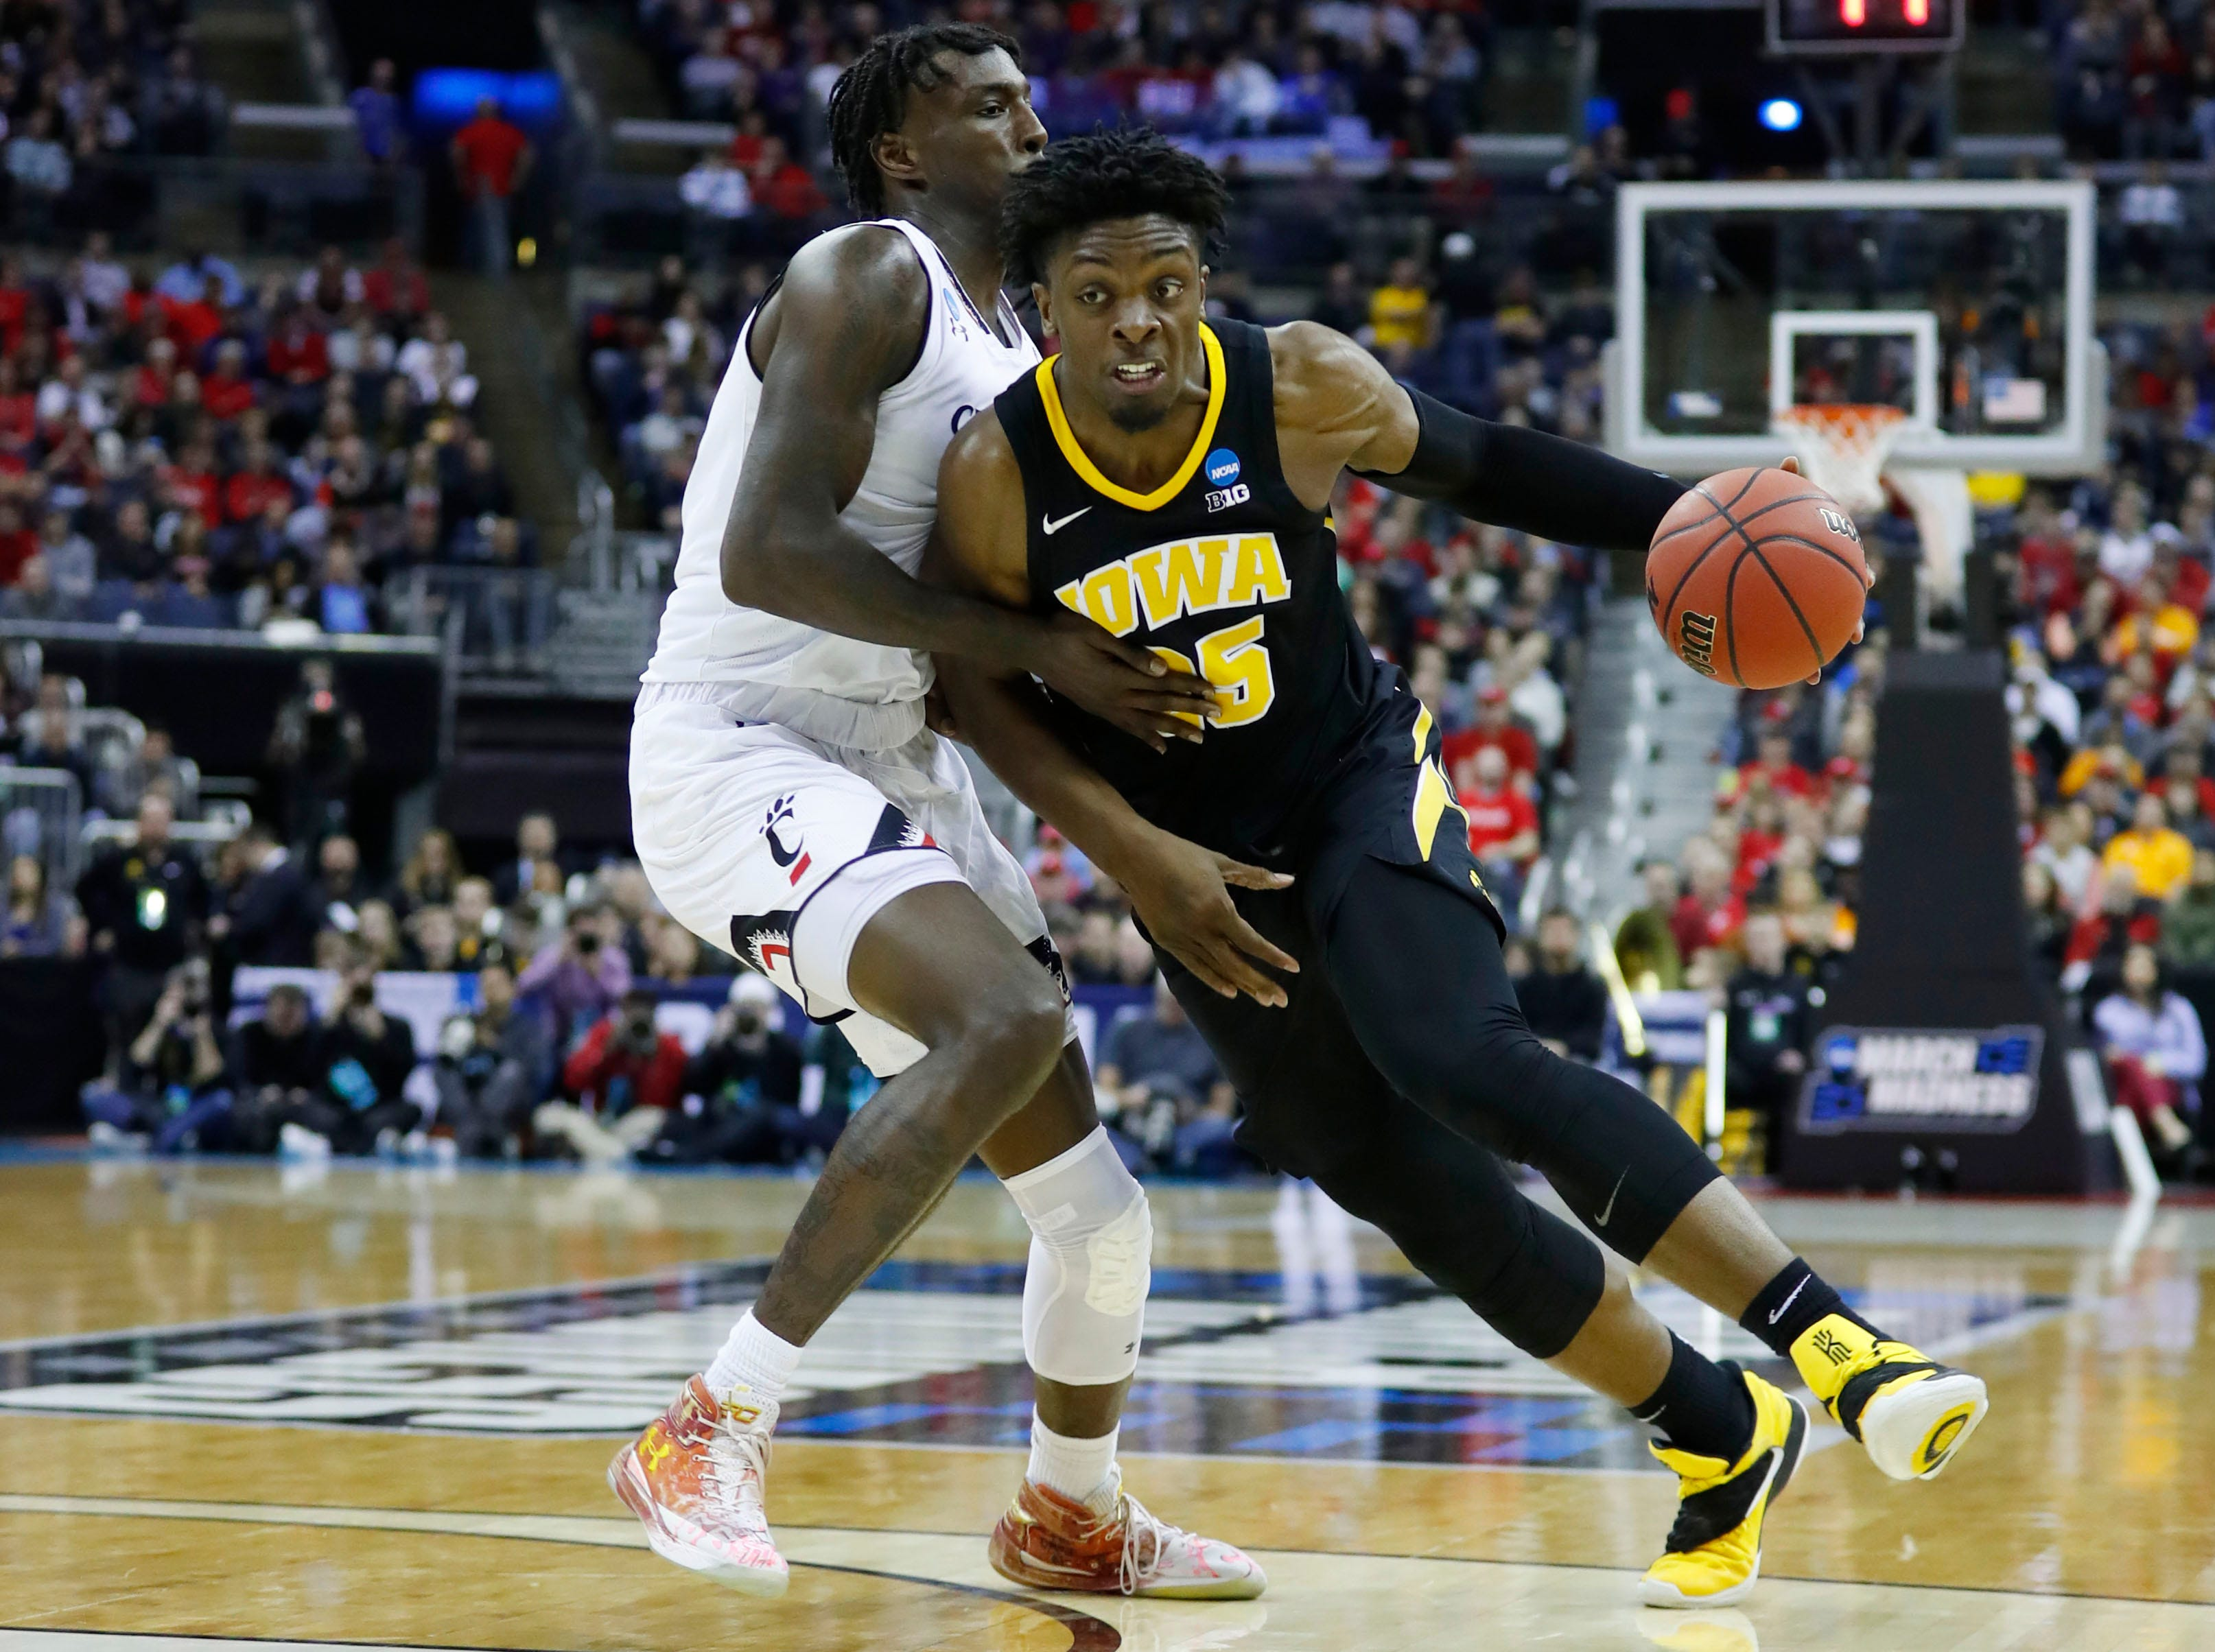 Mar 22, 2019; Columbus, OH, USA; Iowa Hawkeyes forward Tyler Cook (25) drives down the court defended by Cincinnati Bearcats center Nysier Brooks (33) in the first half in the first round of the 2019 NCAA Tournament at Nationwide Arena. Mandatory Credit: Rick Osentoski-USA TODAY Sports